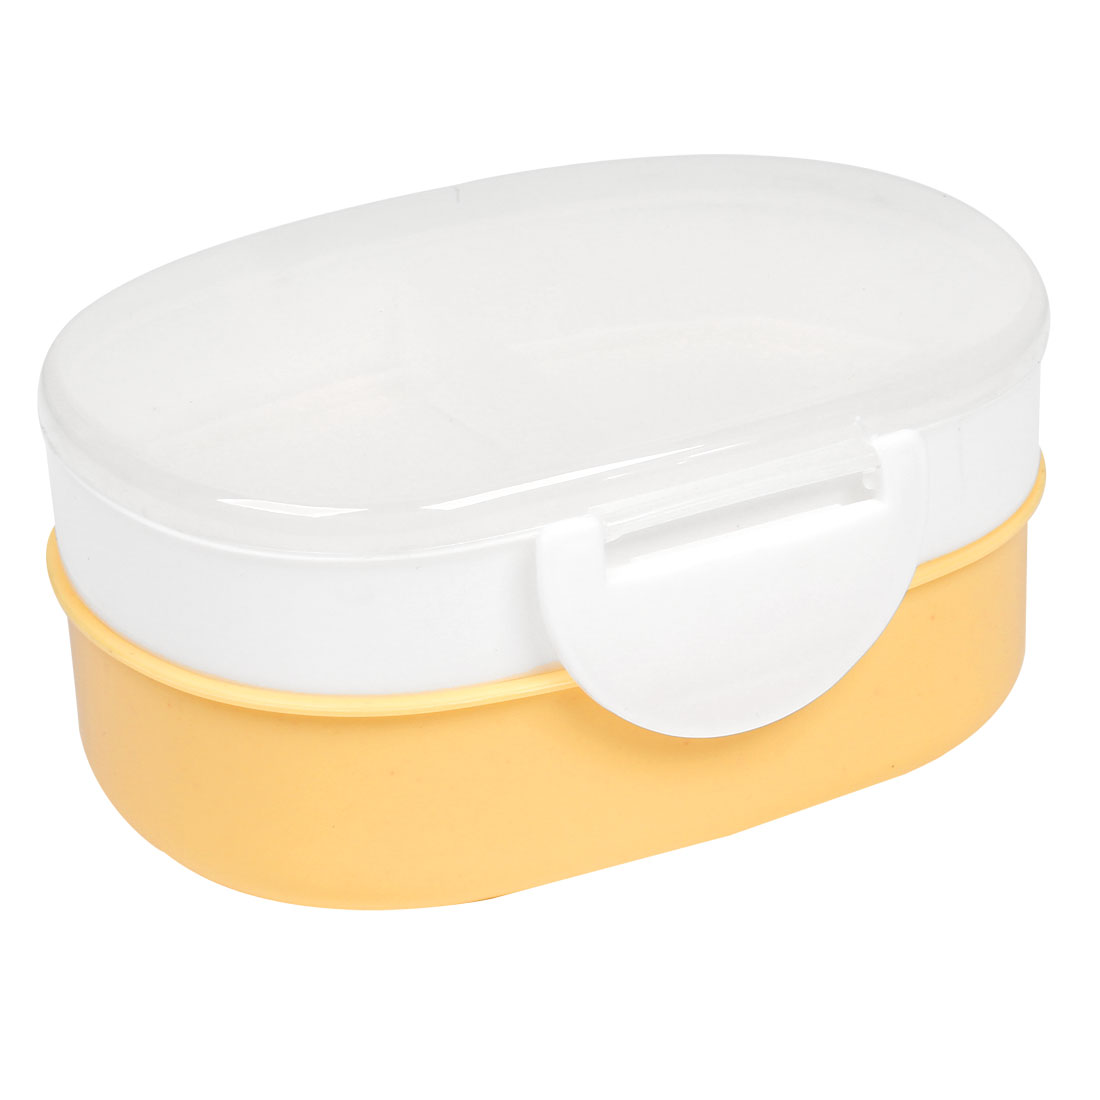 Travel Picnic White Light Orange Two Layers Oval Plastic Lunch Case + Spoon